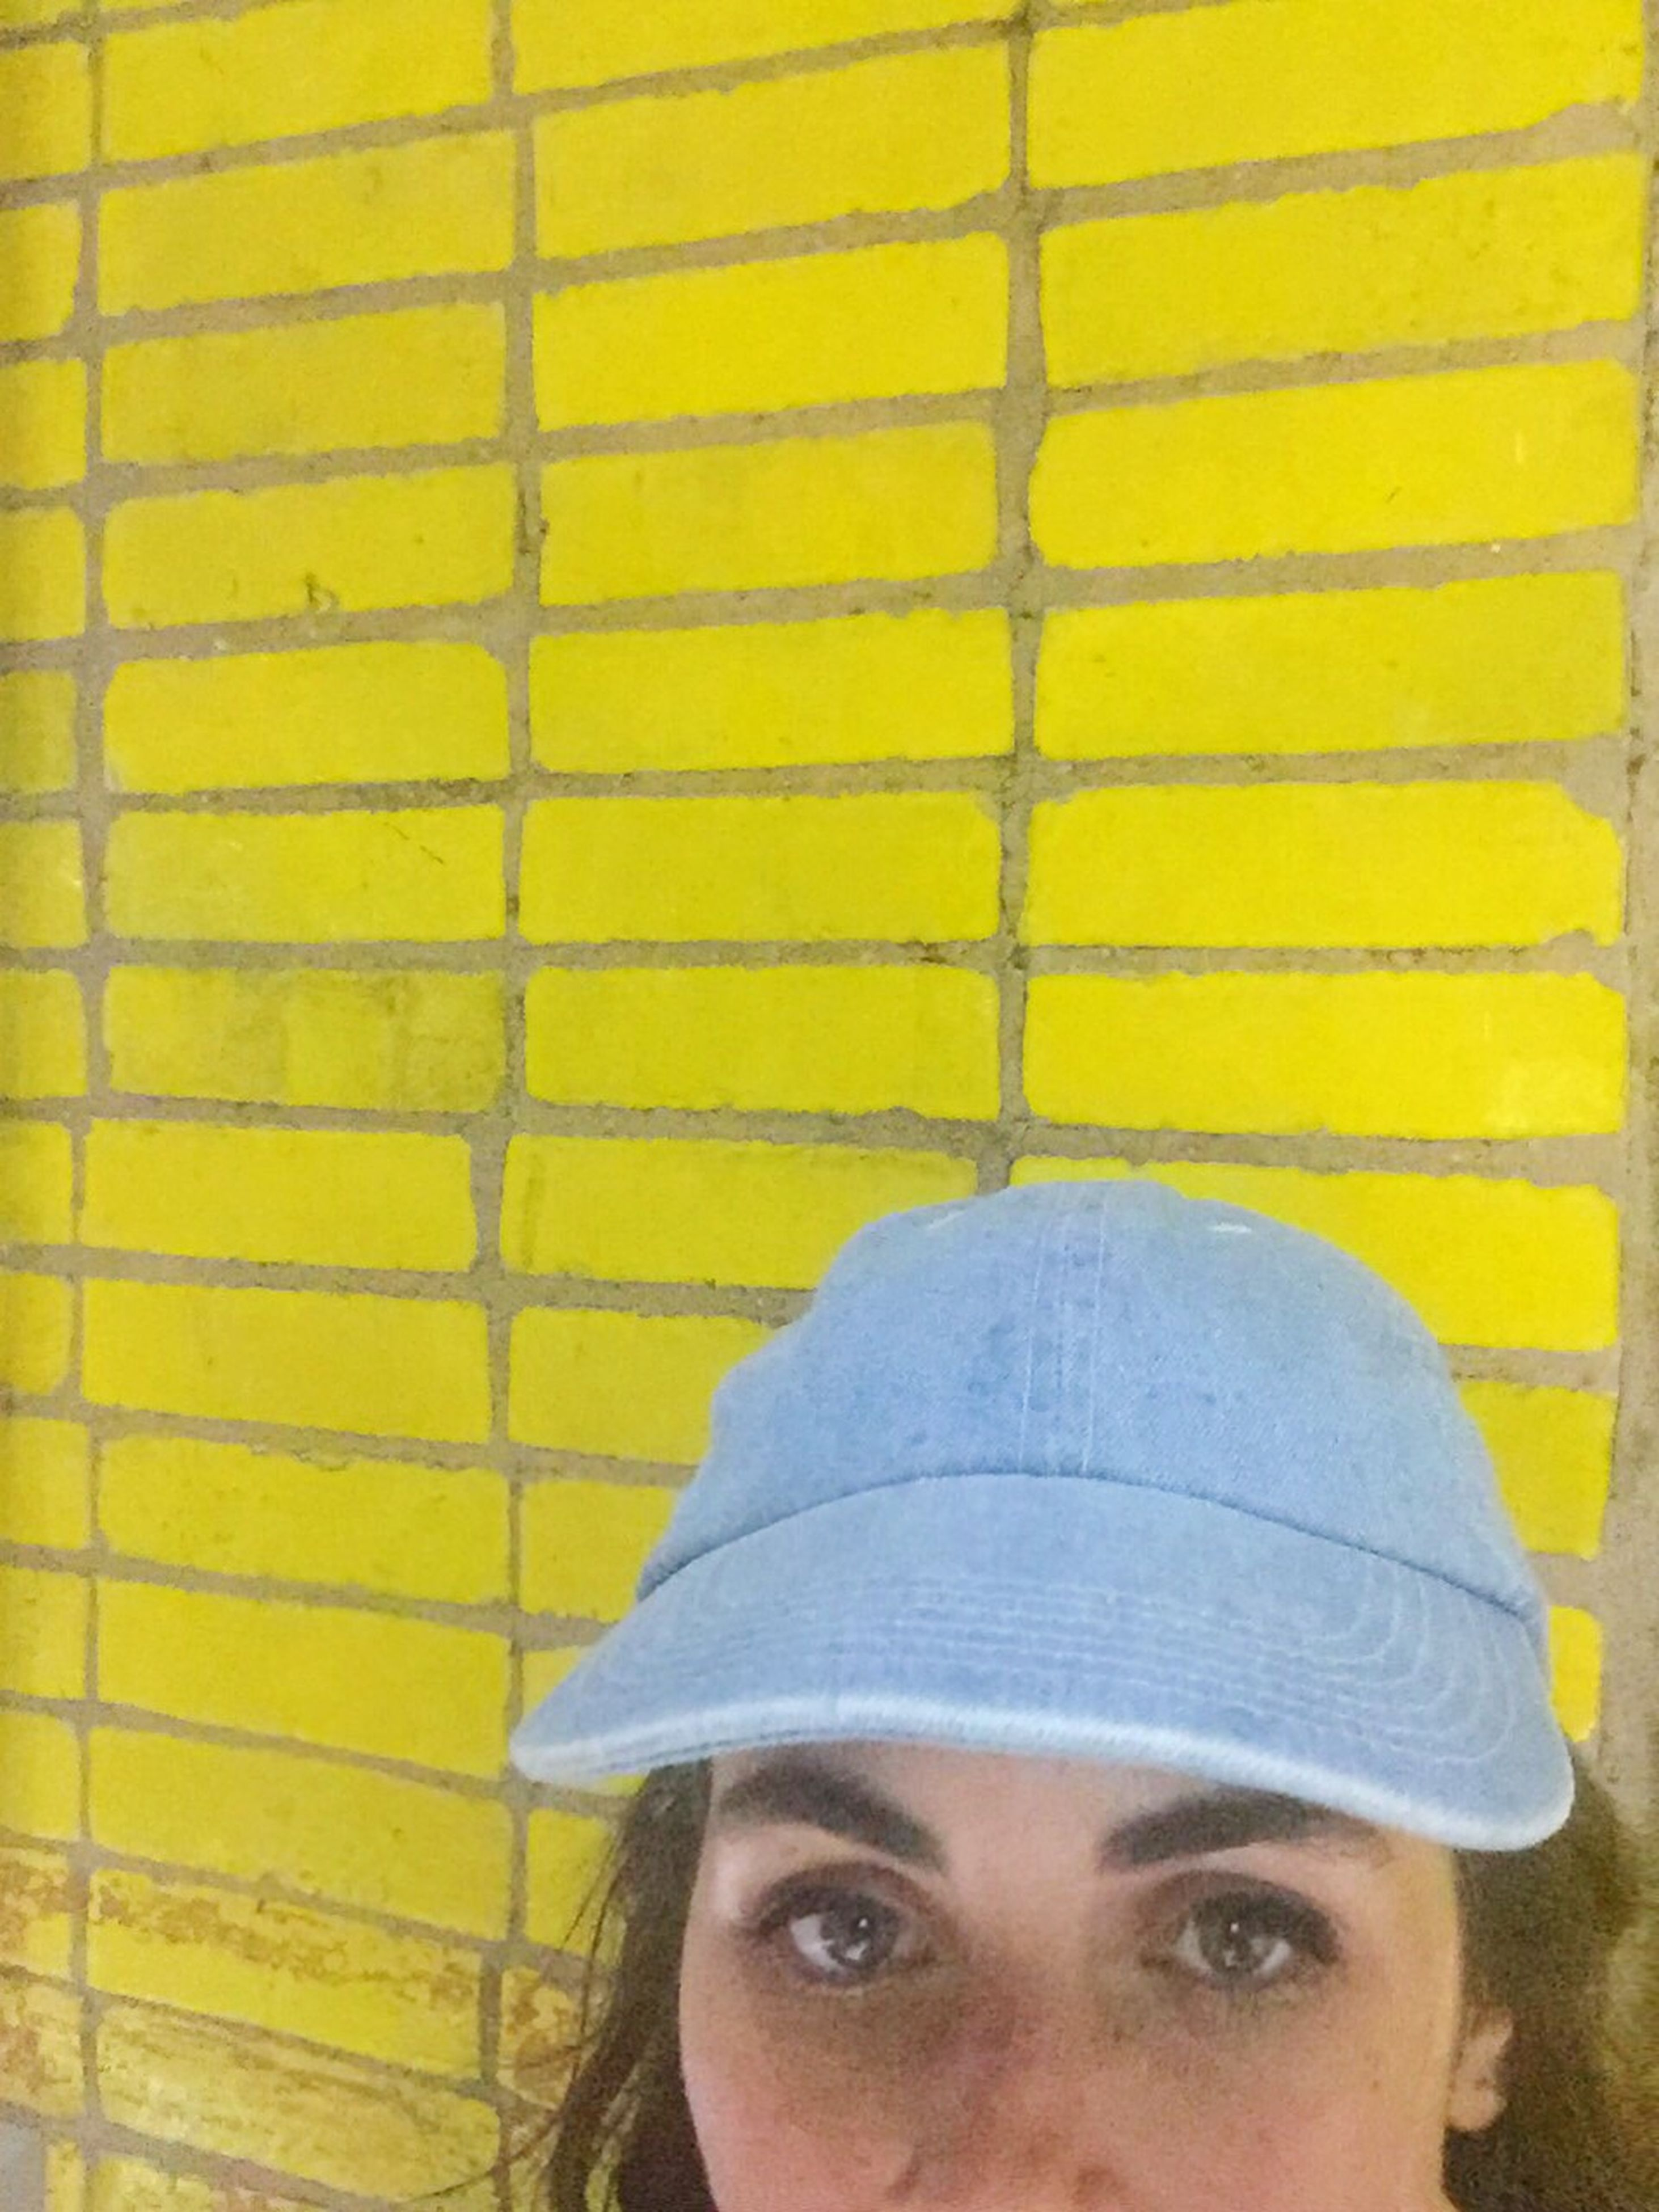 yellow, lifestyles, close-up, headshot, leisure activity, day, outdoors, casual clothing, portrait, blue